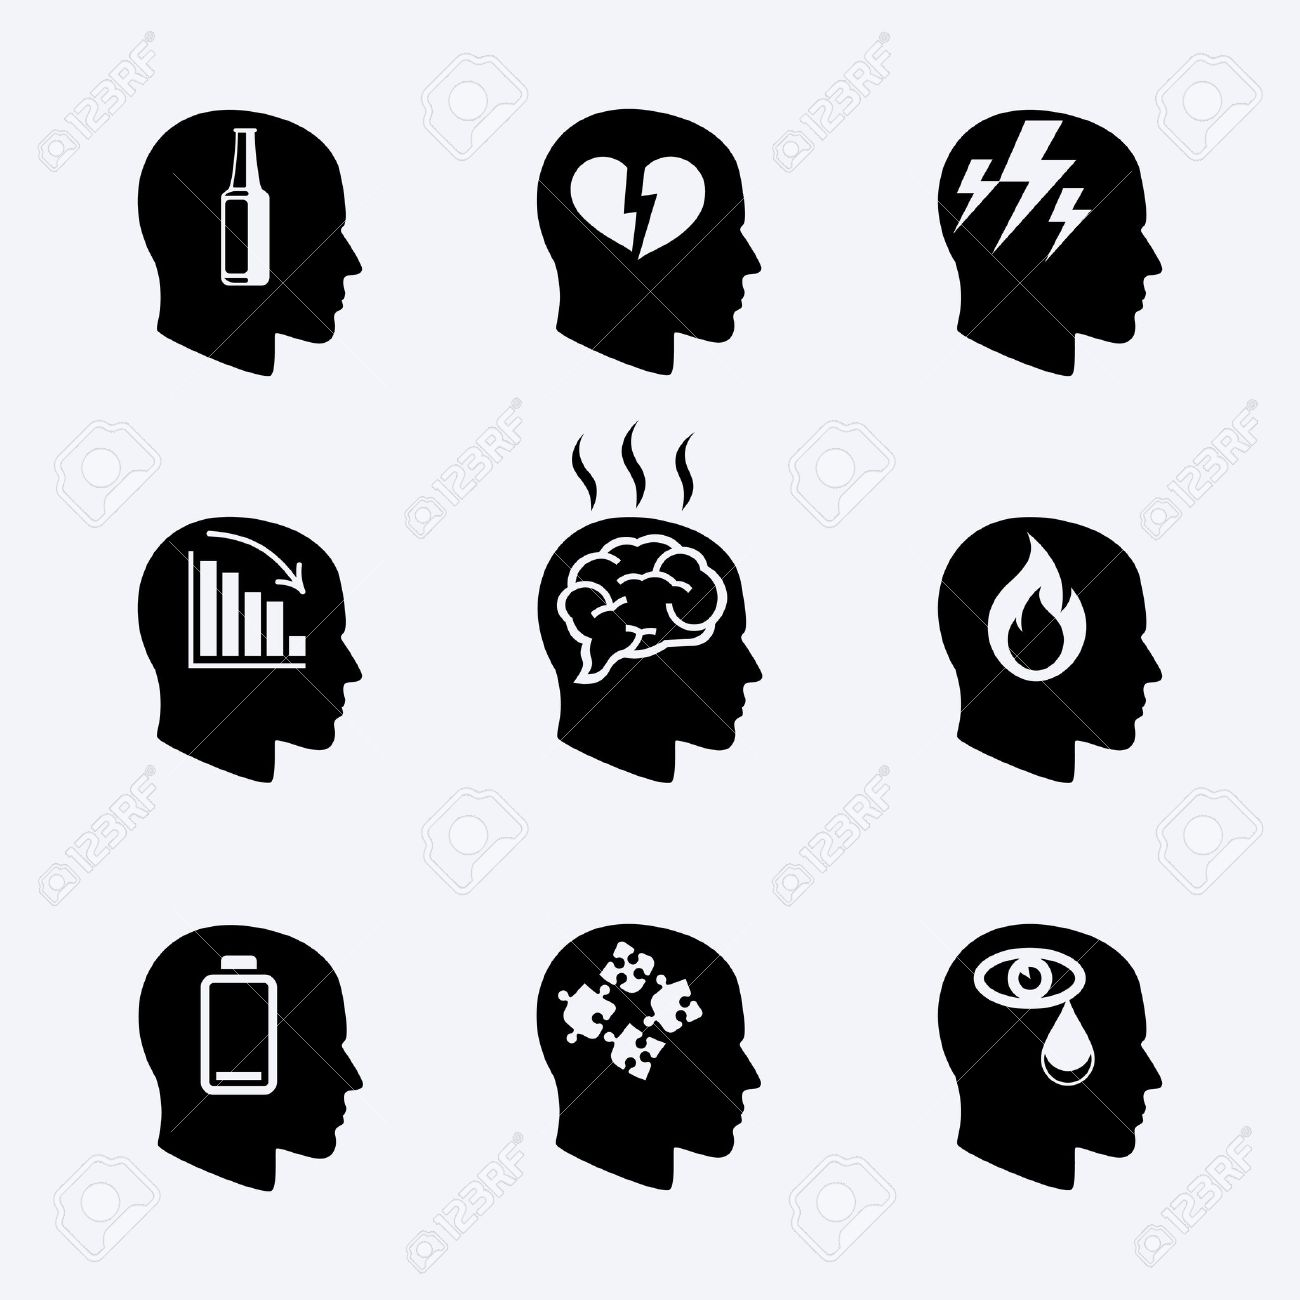 Depression, stress concept or mental health icons - 40787300